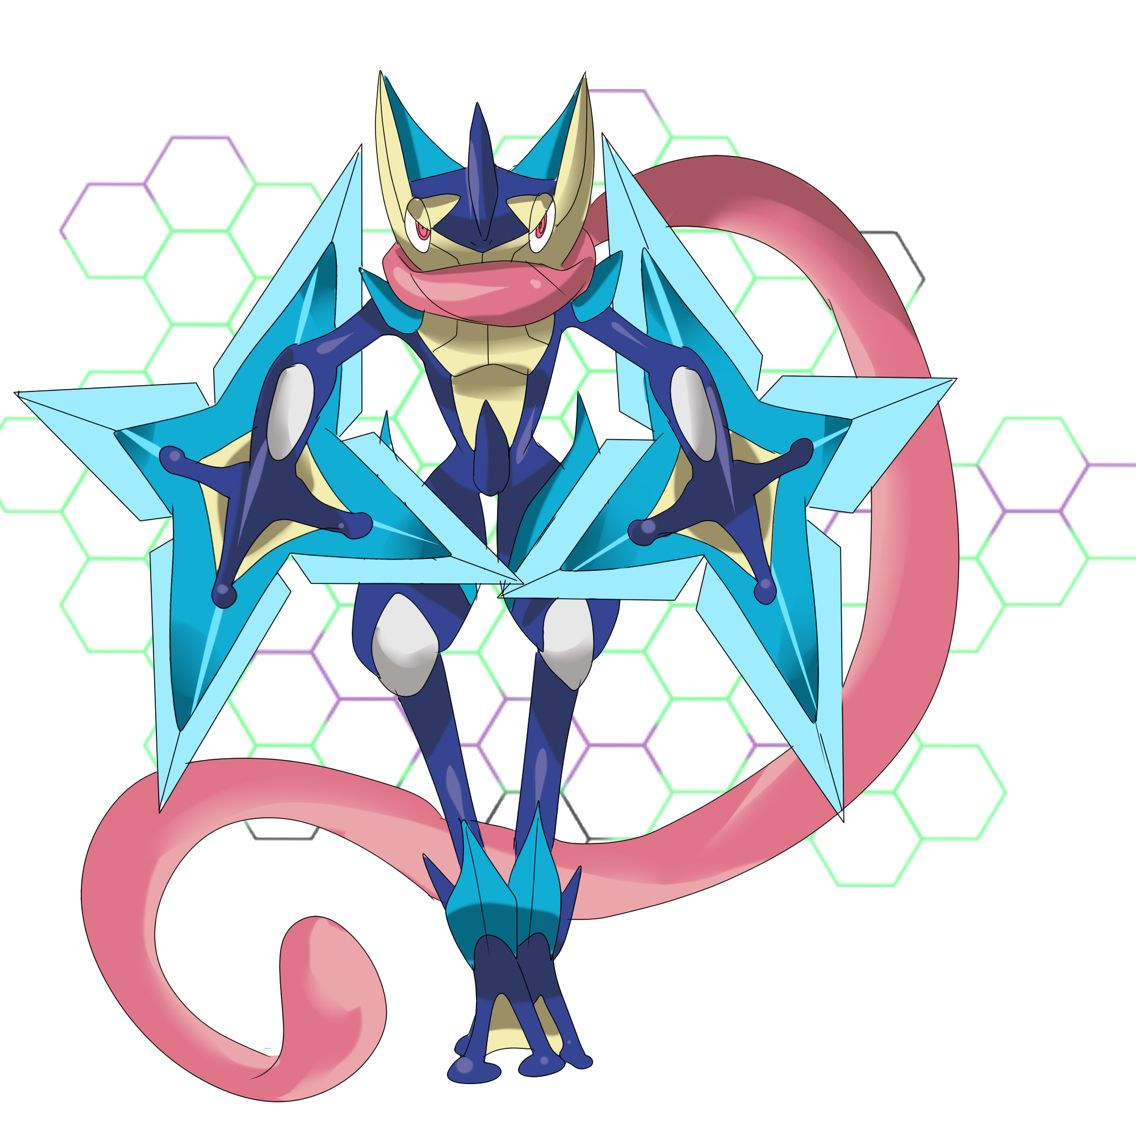 Mega greninja fan art greninja dibujos de pokemon im genes de pokemon mega evoluci n - Pokemon tortank mega evolution ...